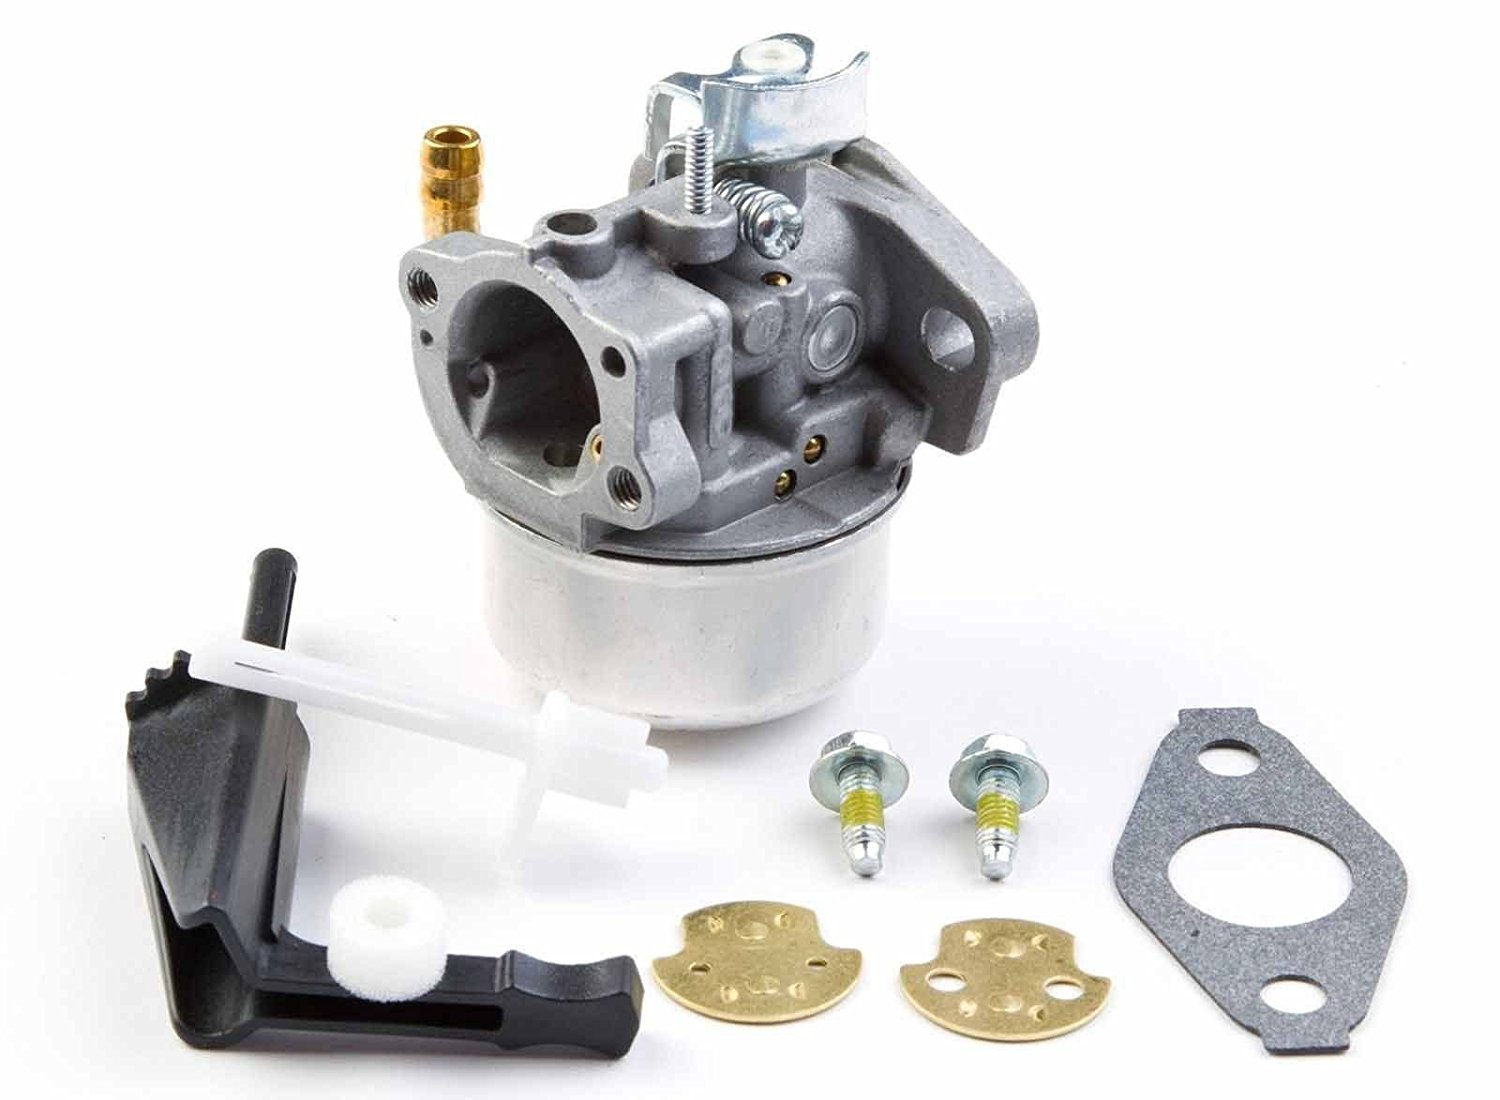 new For Briggs & Stratton 798653 Carburetor Replaces #697354, 790290, 791077, 698860